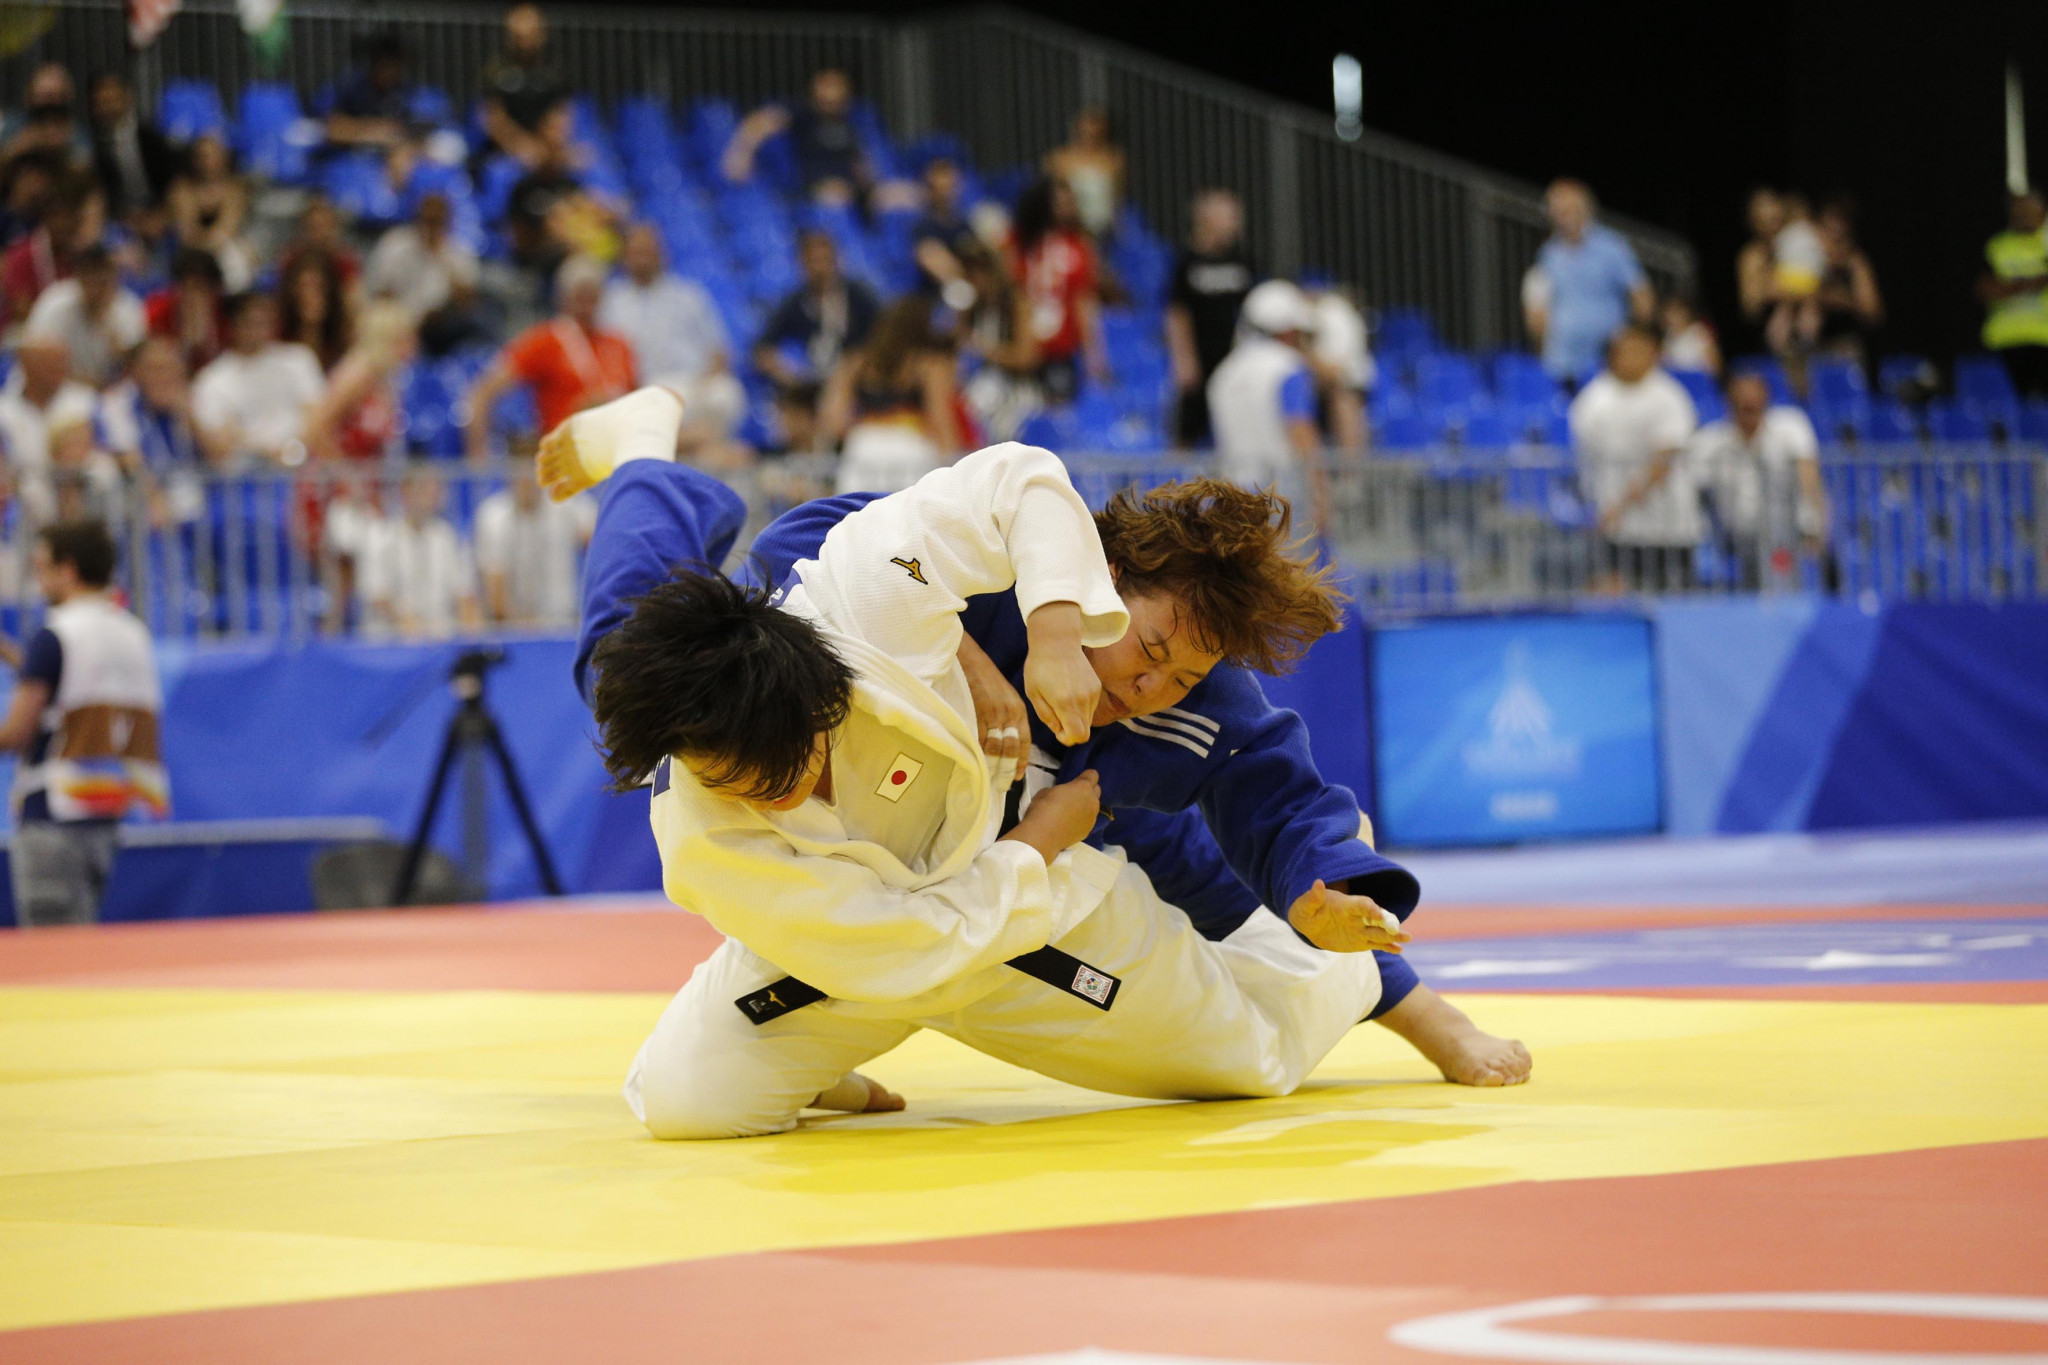 Japan's Ranto Katsura continued her country's dominance in judo, winning the women's under-52kg ©Naples 2019